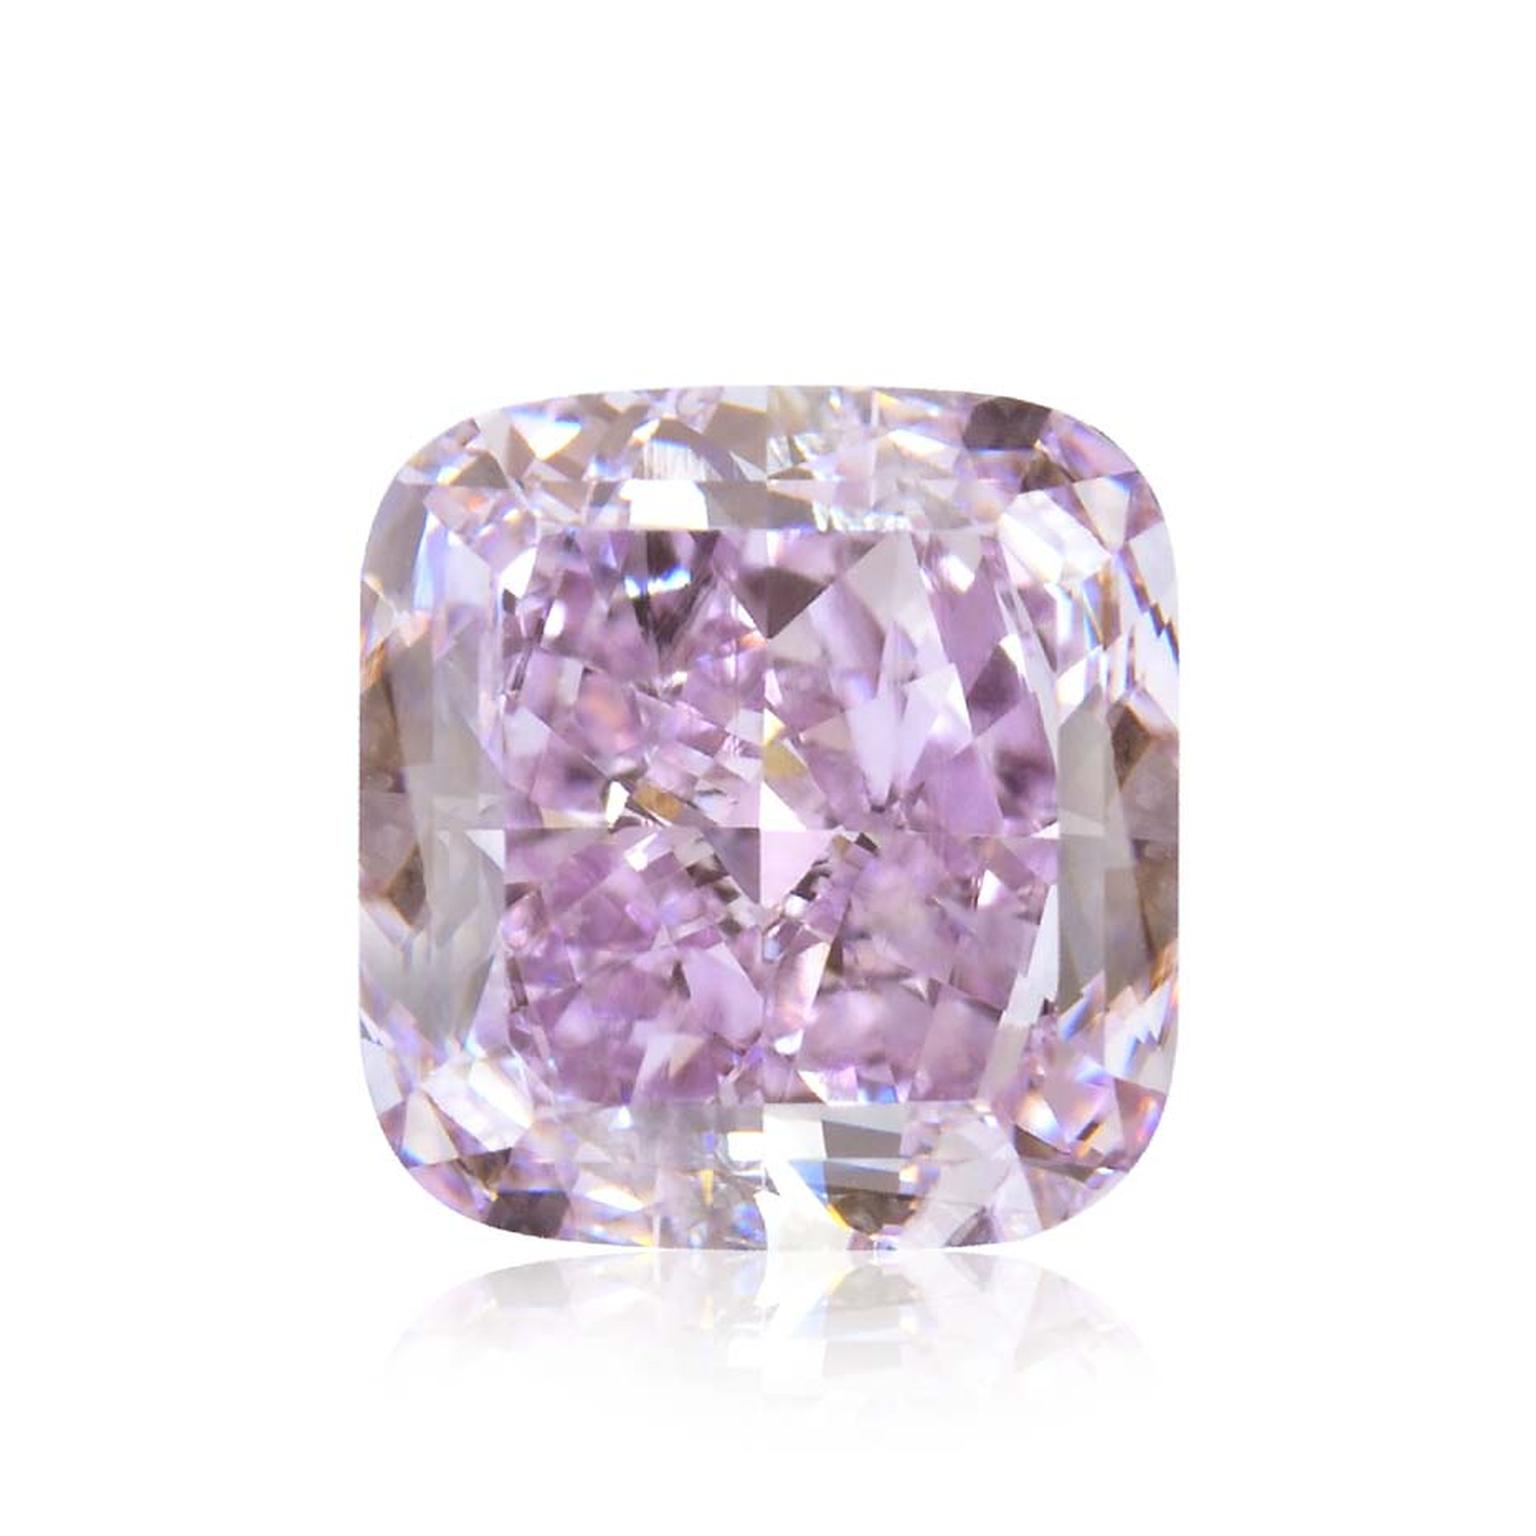 Weighing 3.37ct, Liebish & Co's rare purple diamond is estimated to be worth US $4 million.